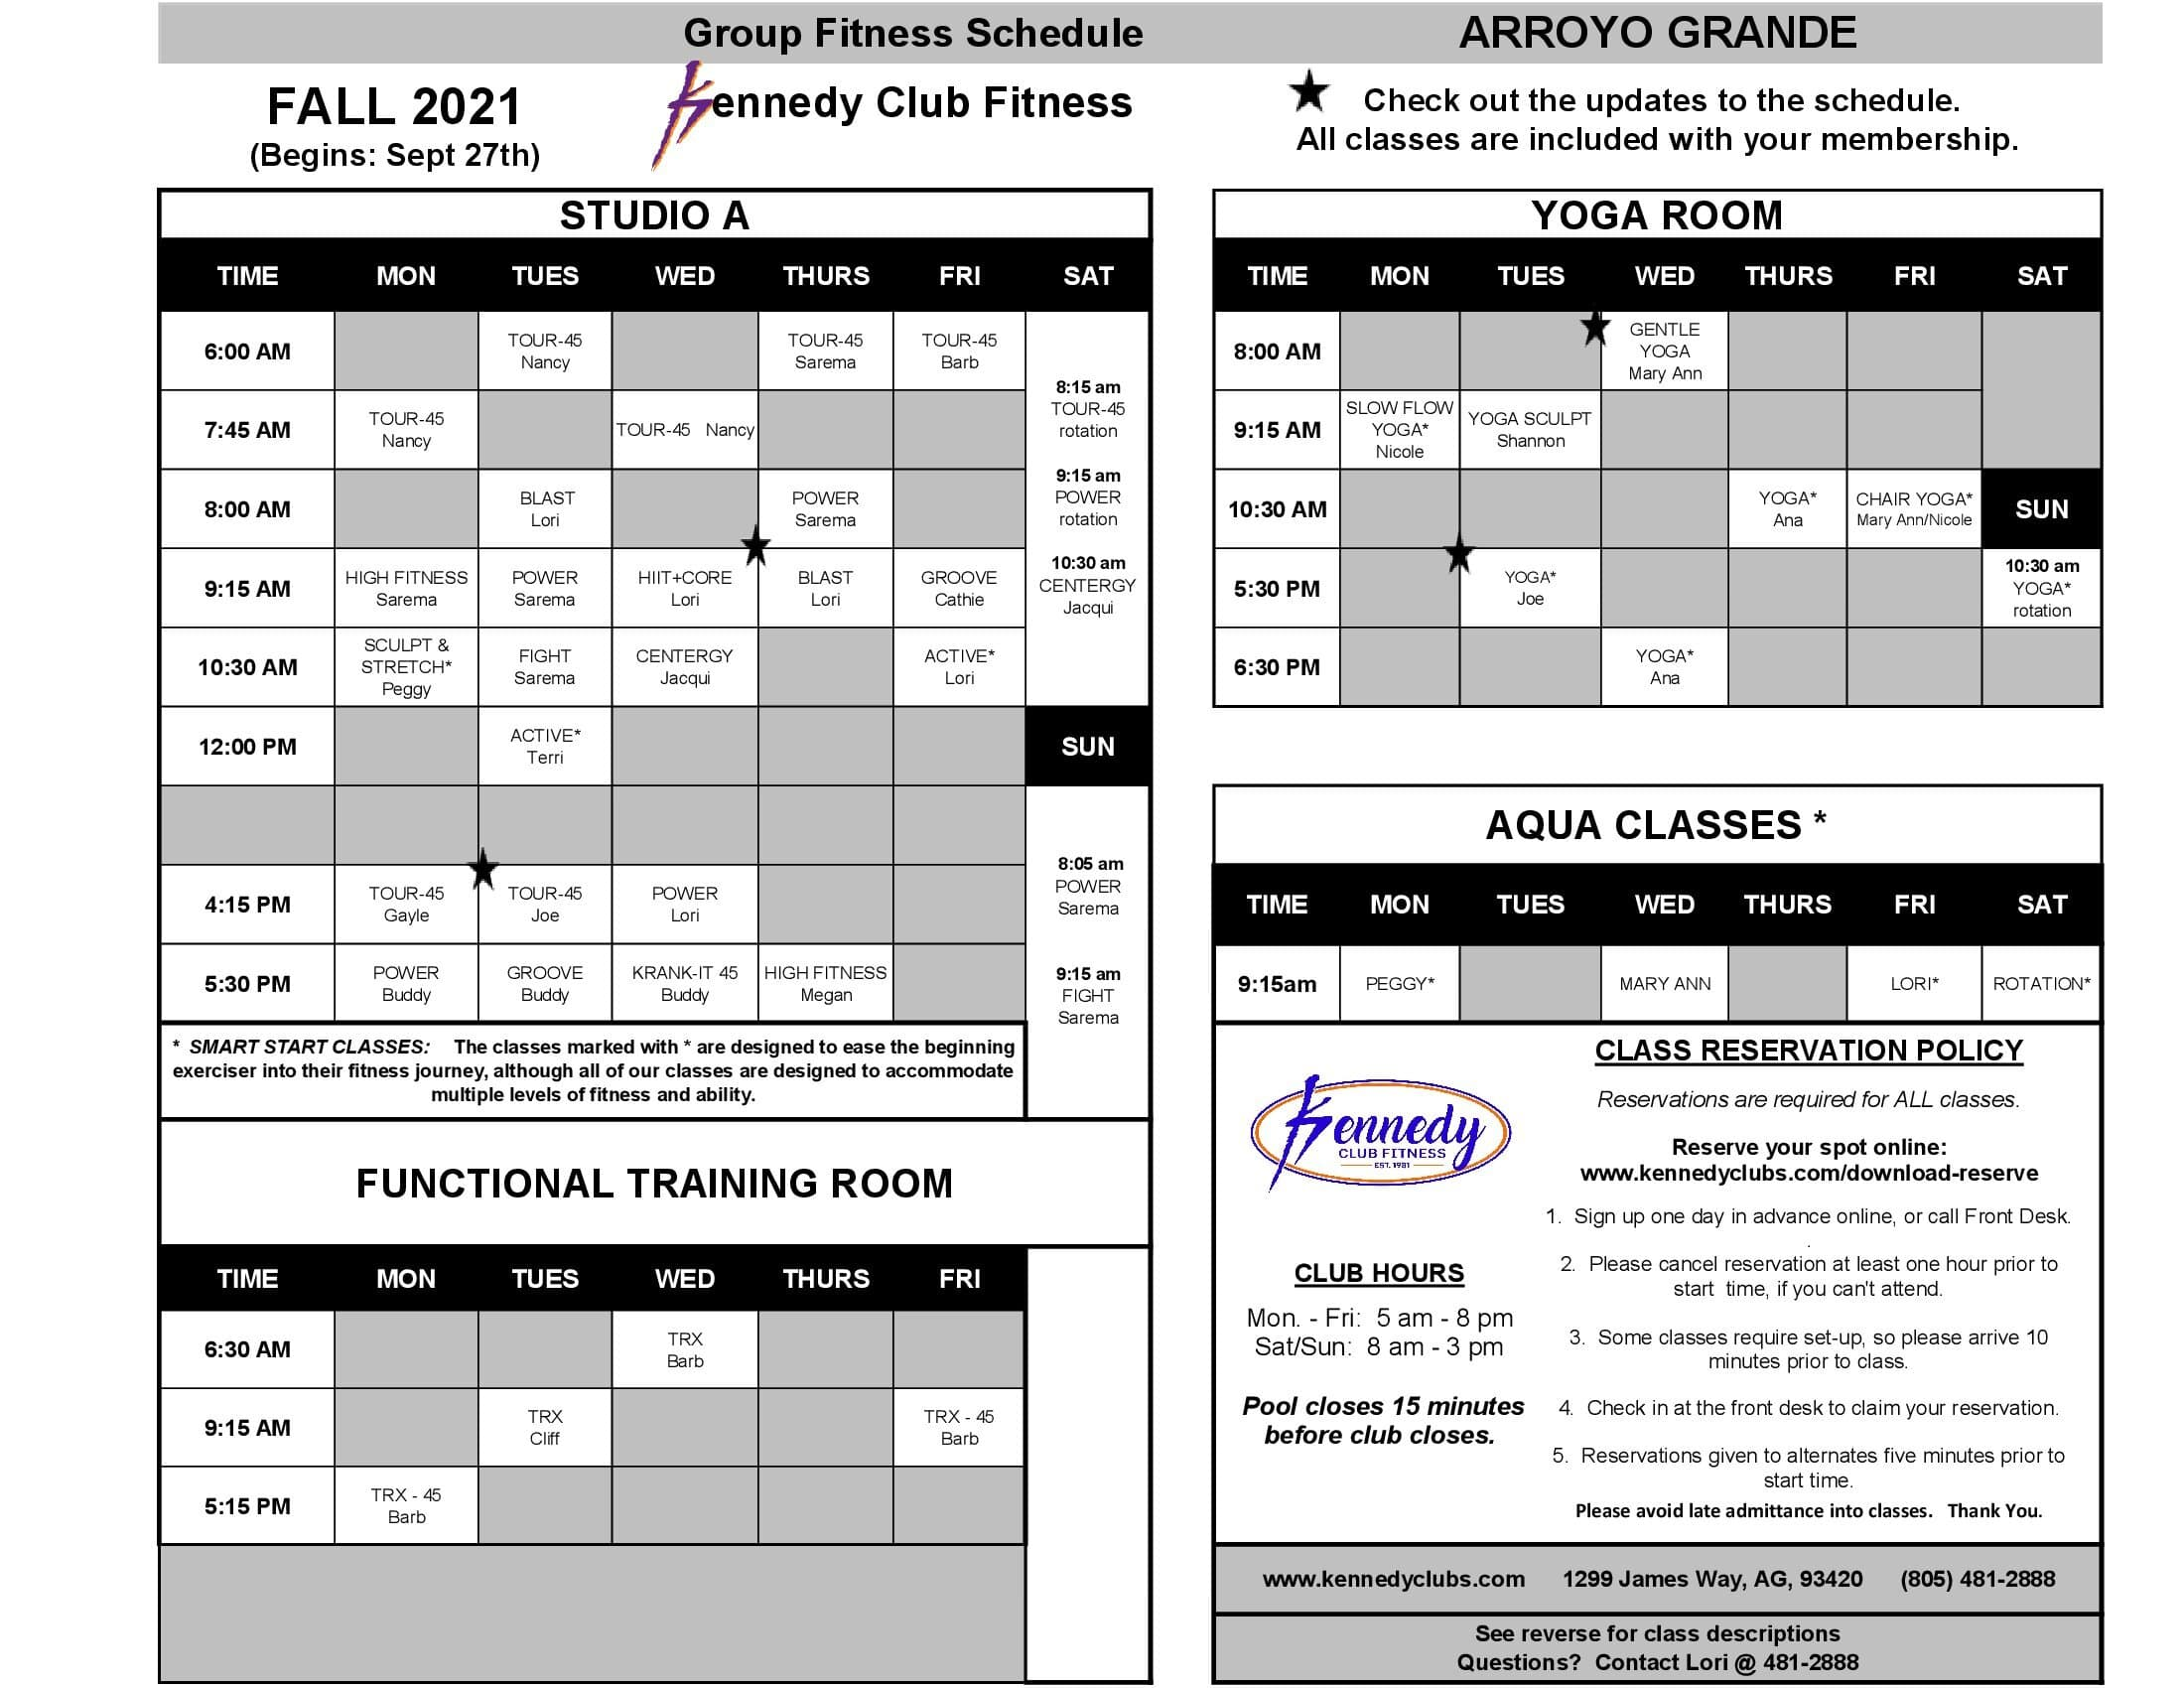 Kennedy Club Fitness Arroyo Grande Group Exercise Schedule